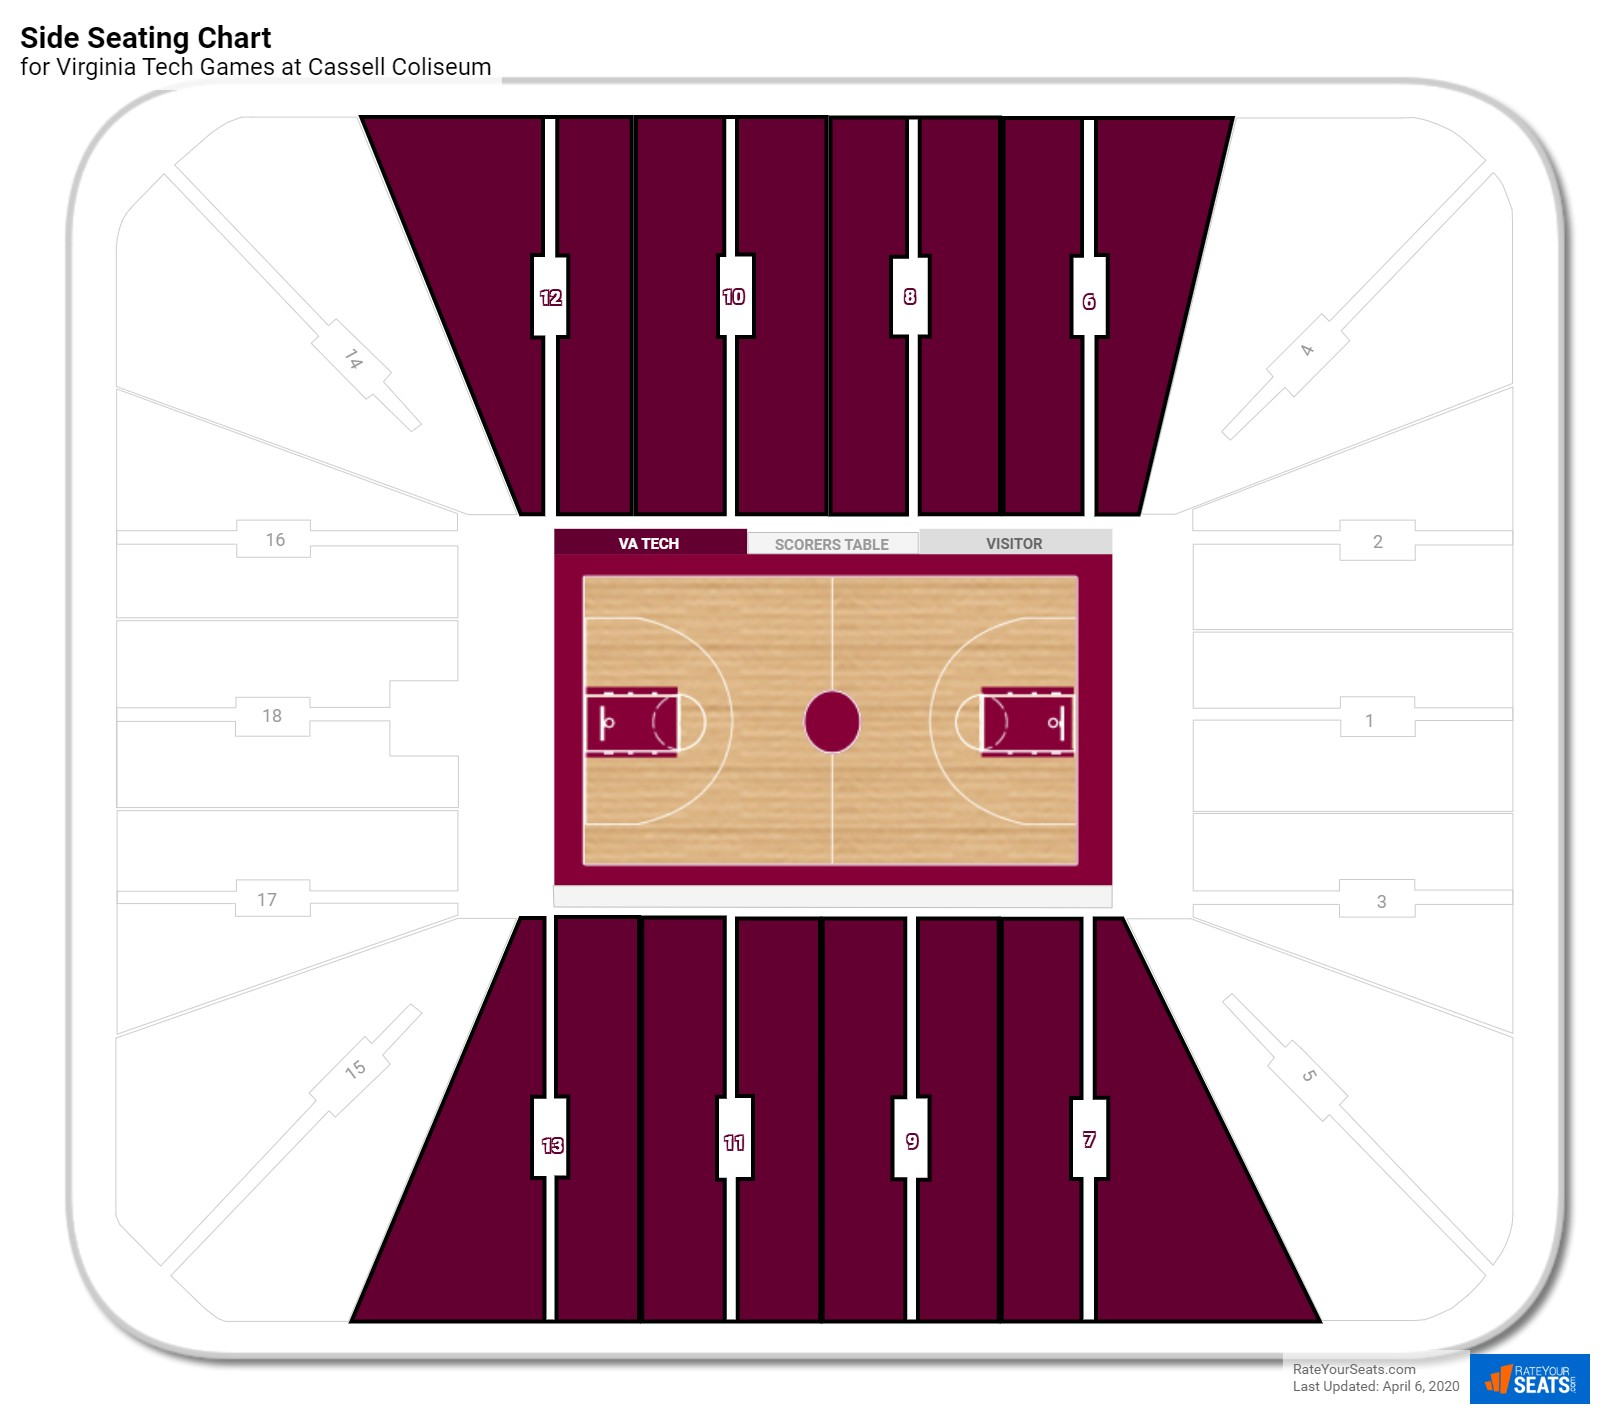 Cassell Coliseum (Virginia Tech) Seating Guide ...